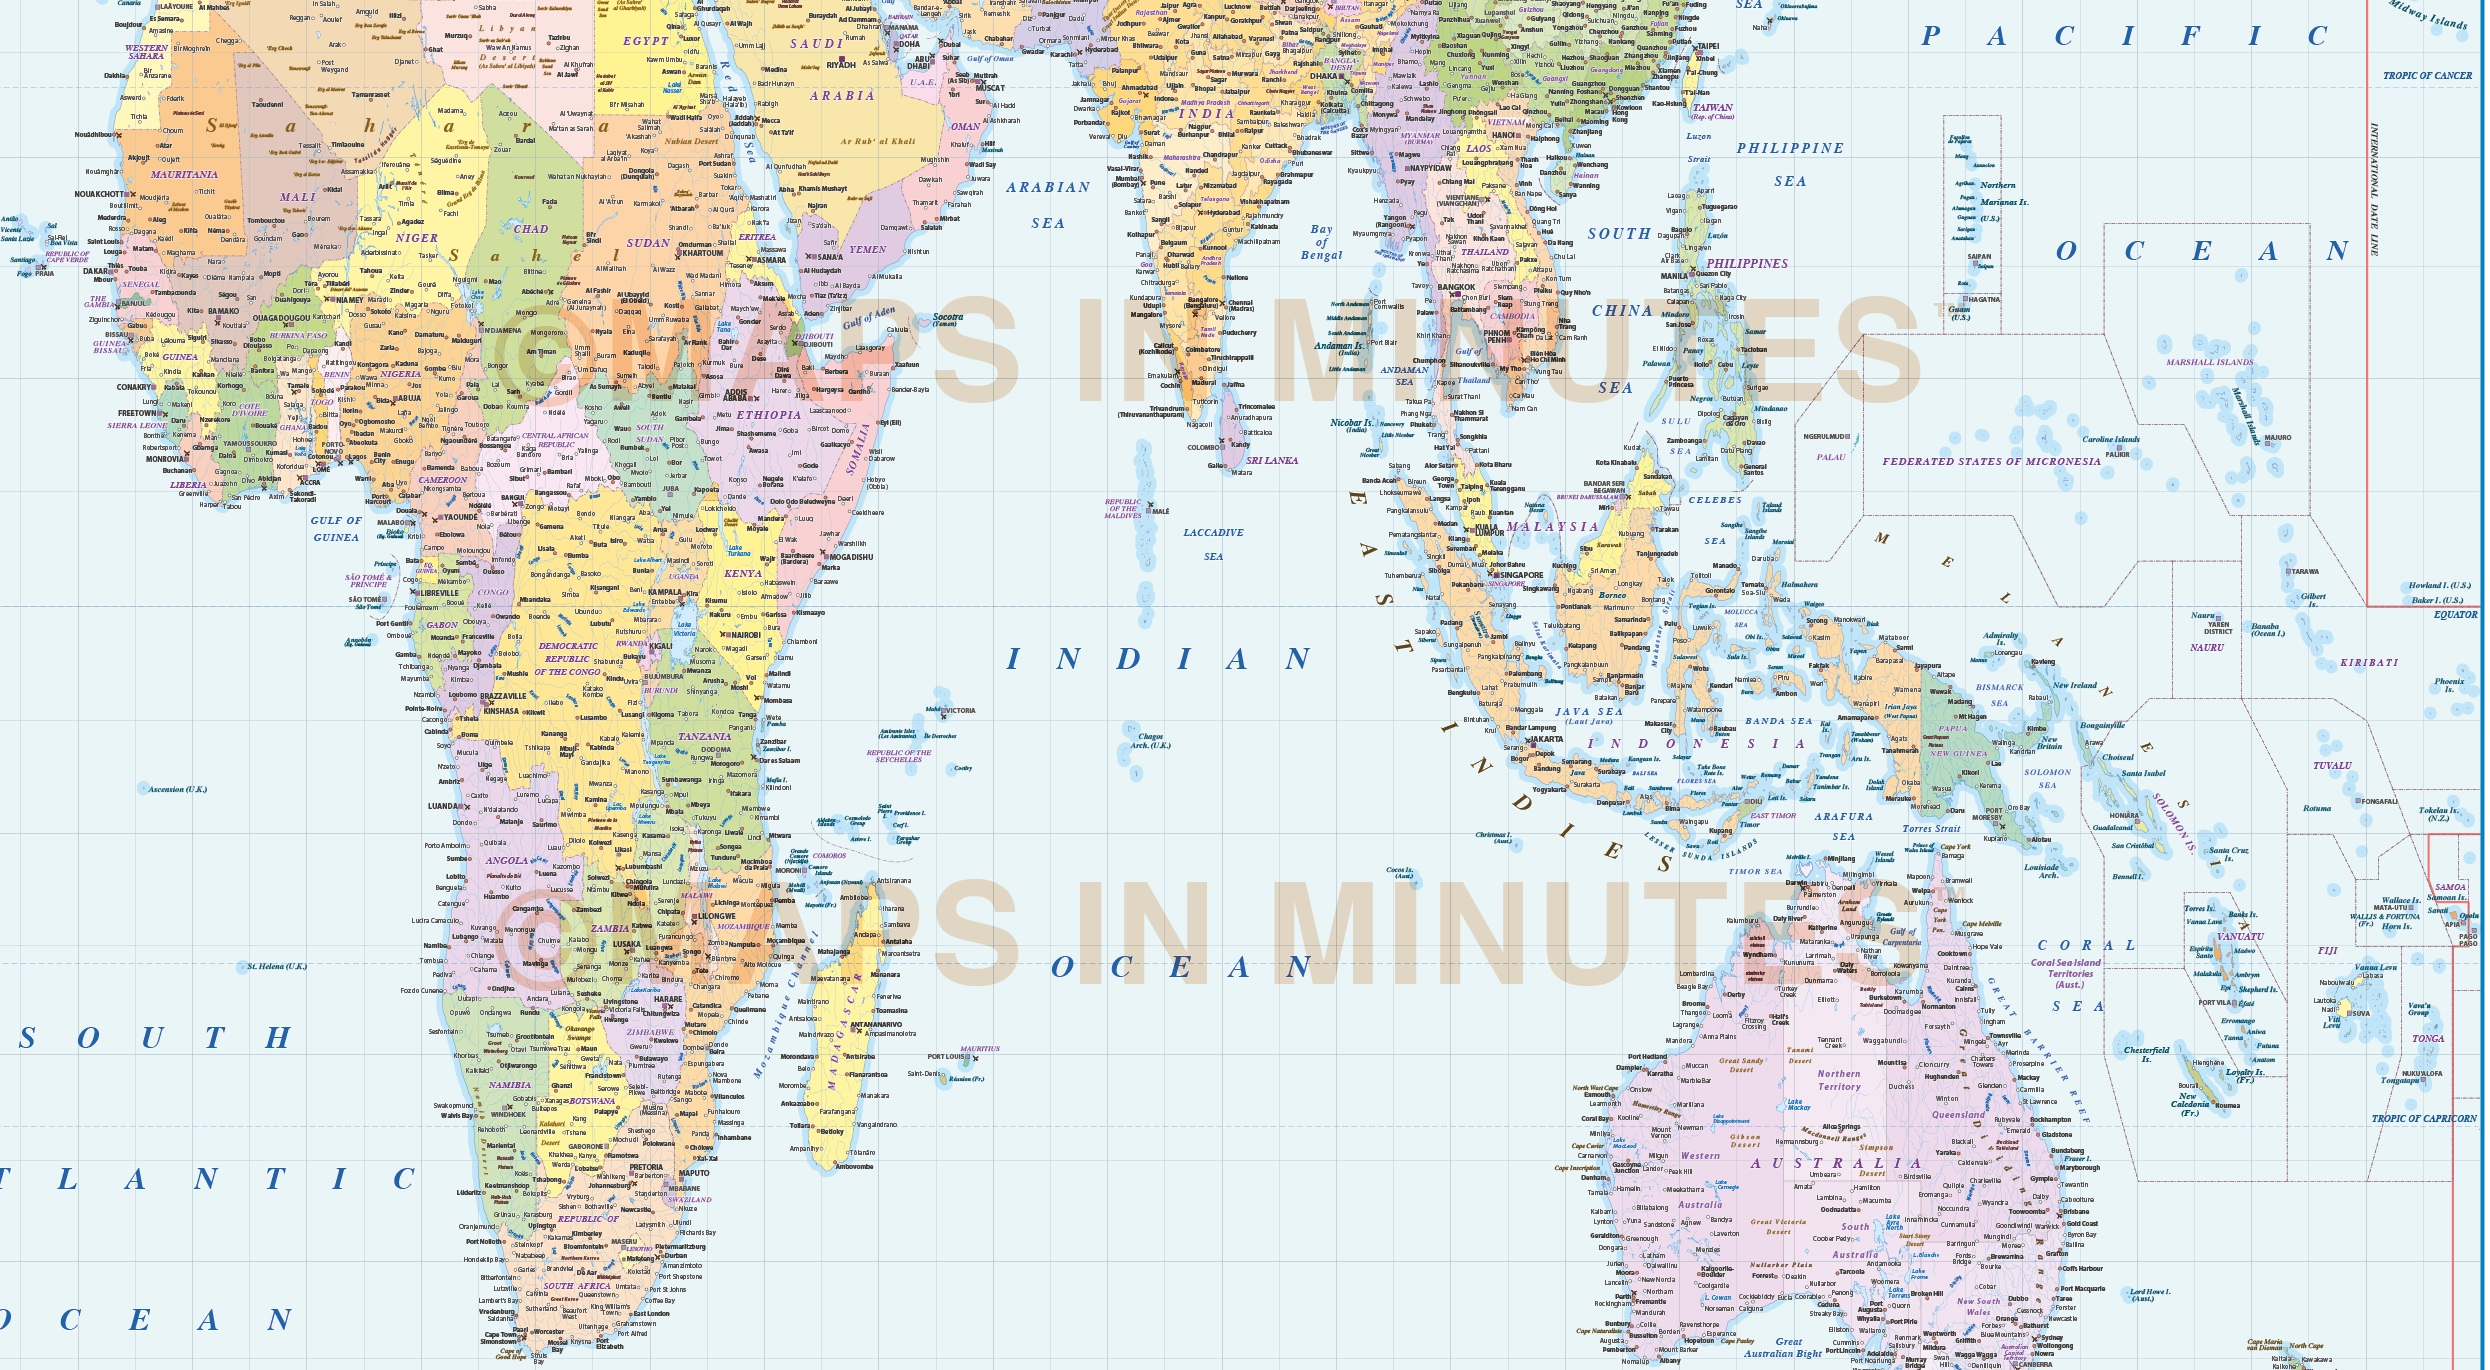 World Map India Centric.  Vector world map Gall Orthographic Projection Political World Map UK centric 10M Digital vector